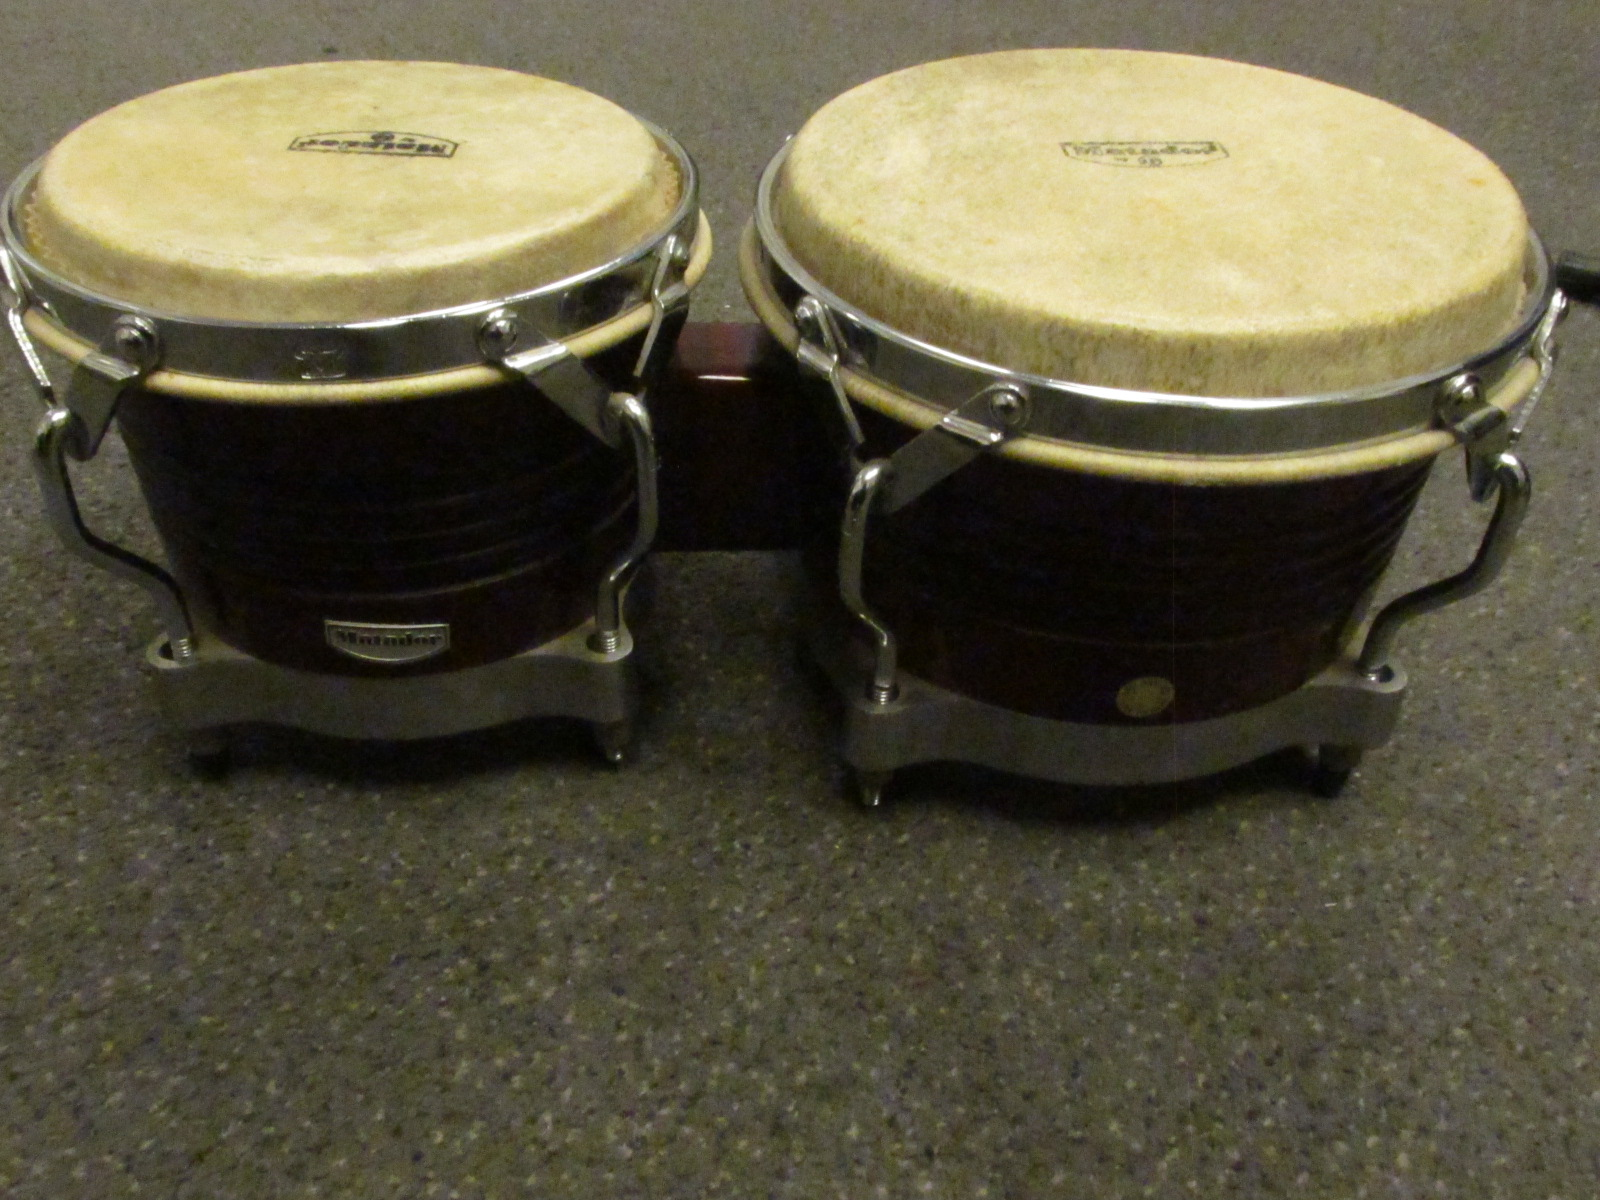 Latin Percussion - Matador bongos